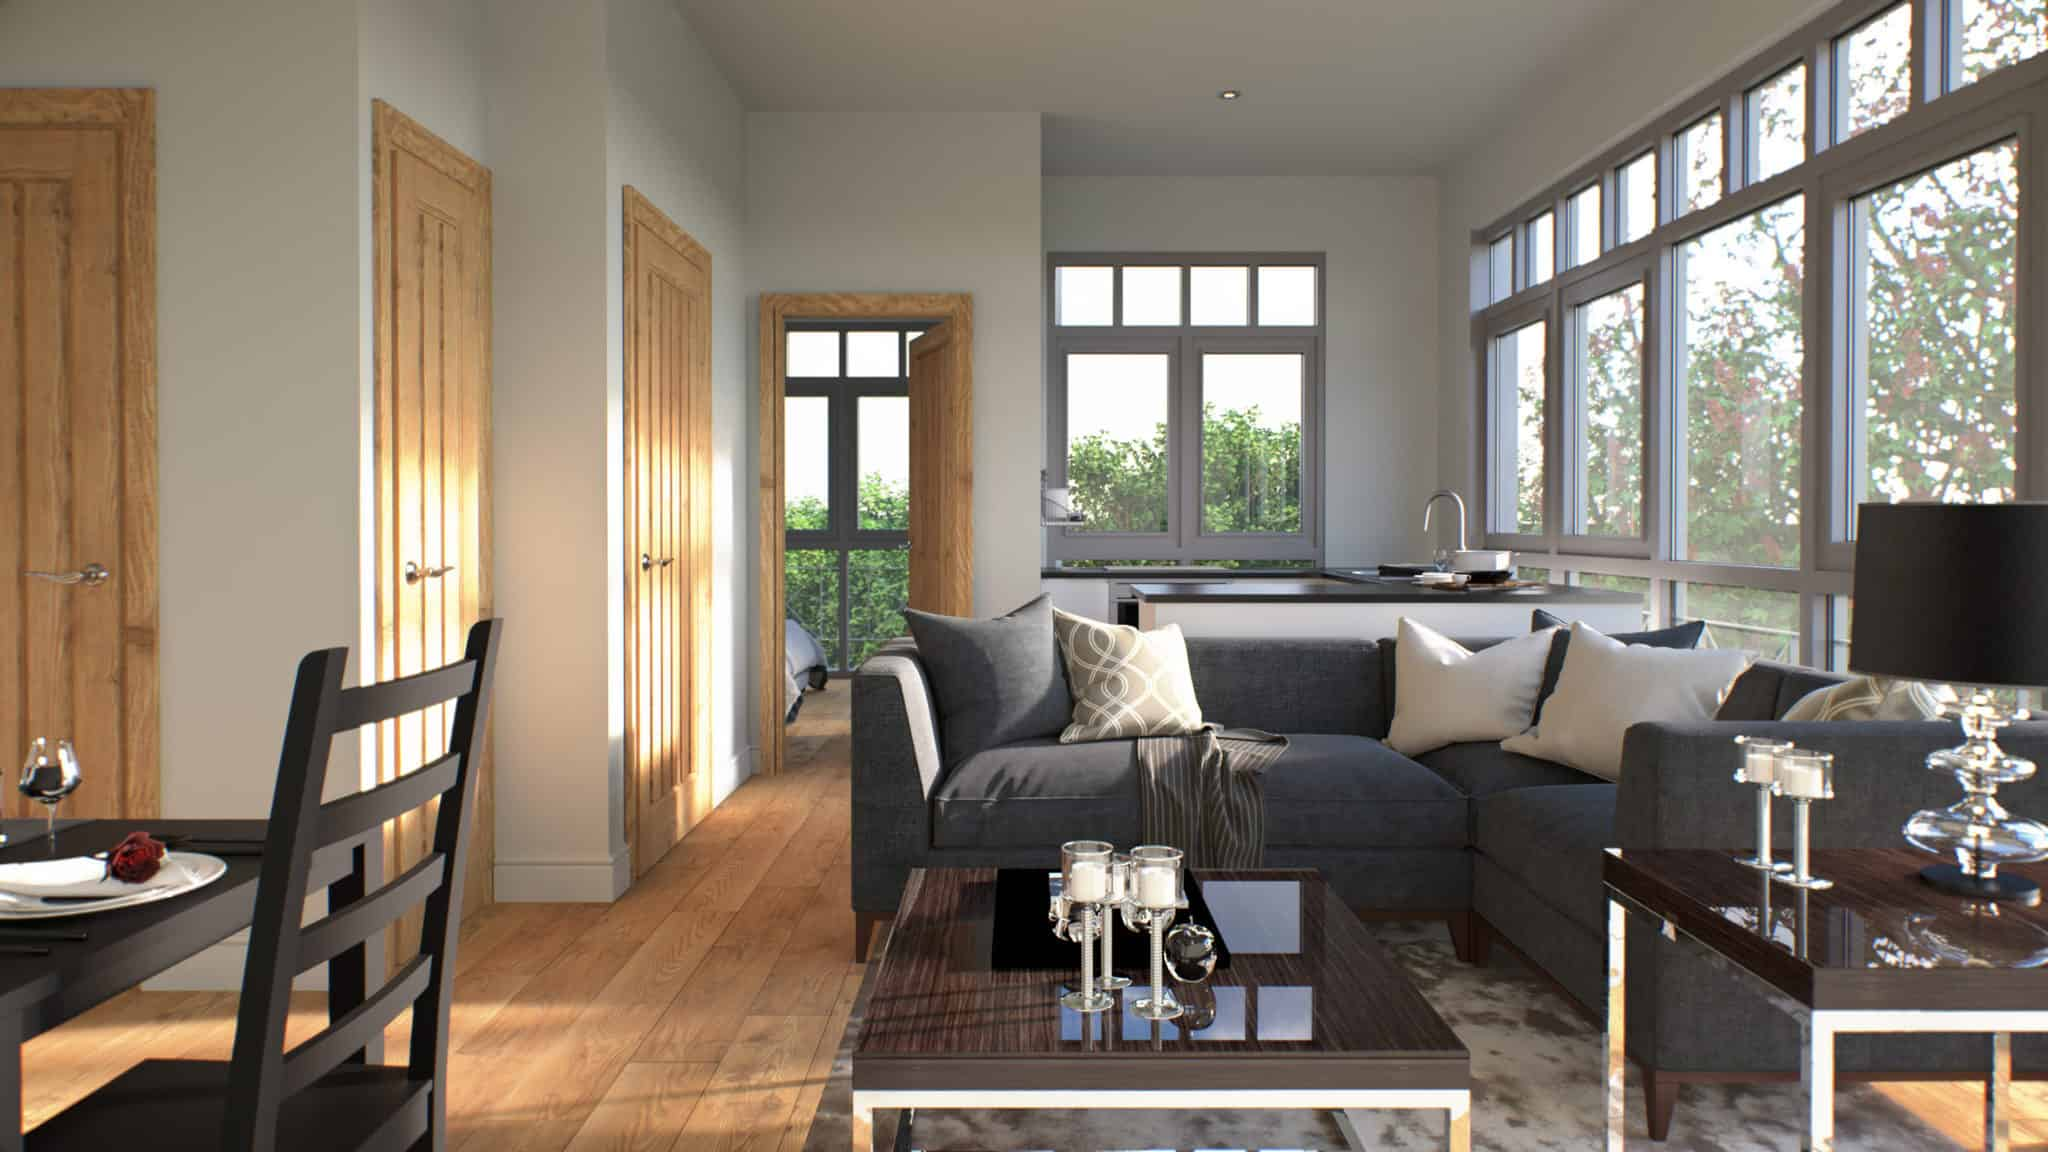 Normandy Court Interior Commercial to Residential Property Conversion Apartment